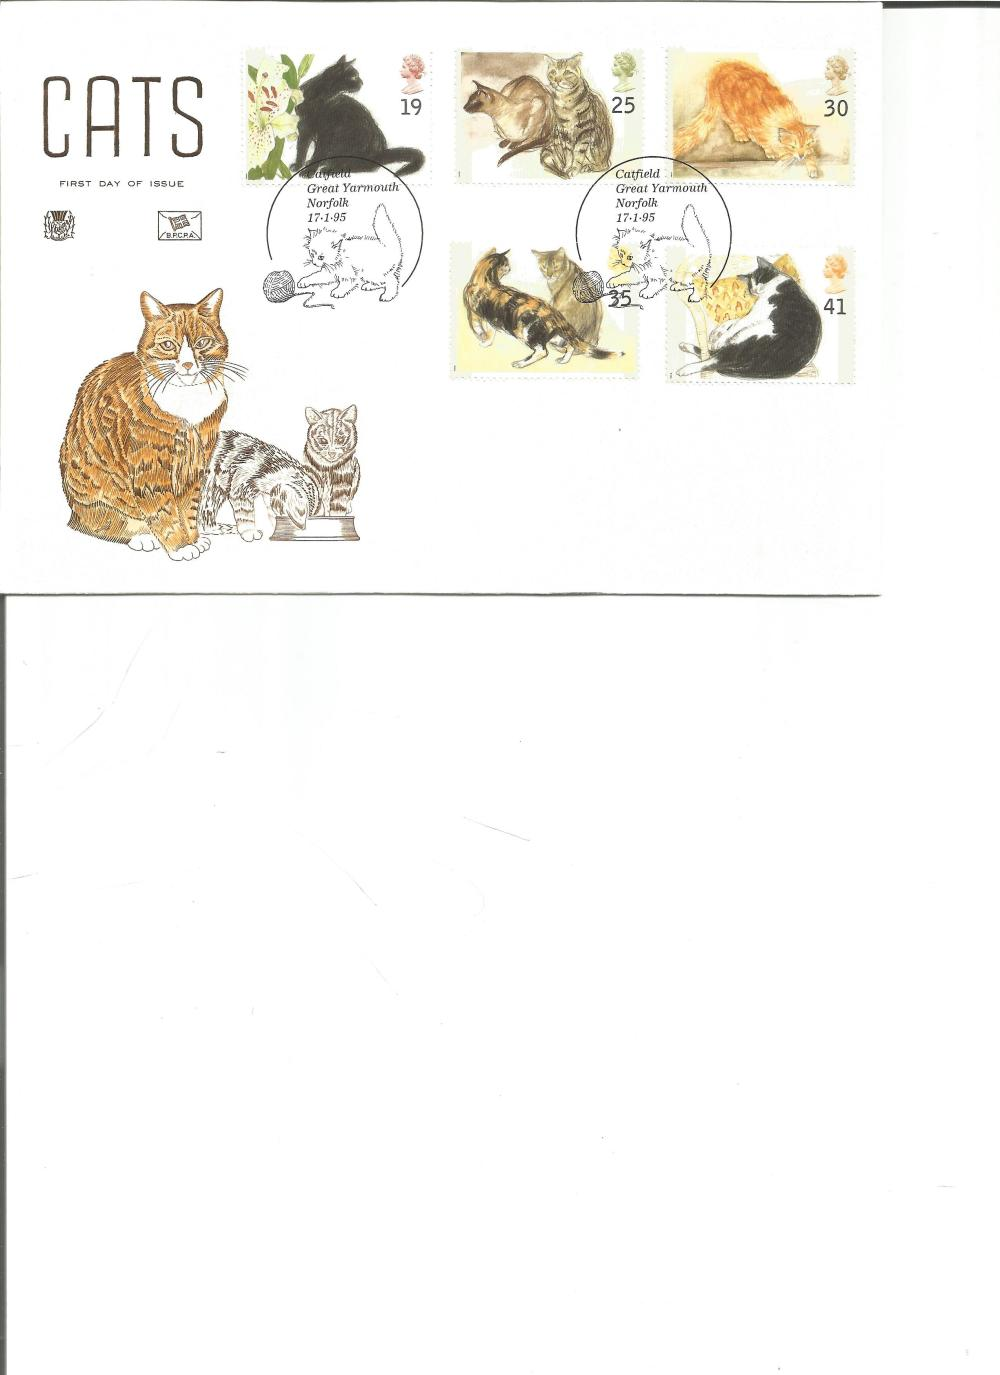 FDC Cats c/w set of five commemorative stamps double PM Catfield Great Yarmouth Norfolk 17. 1. 95.